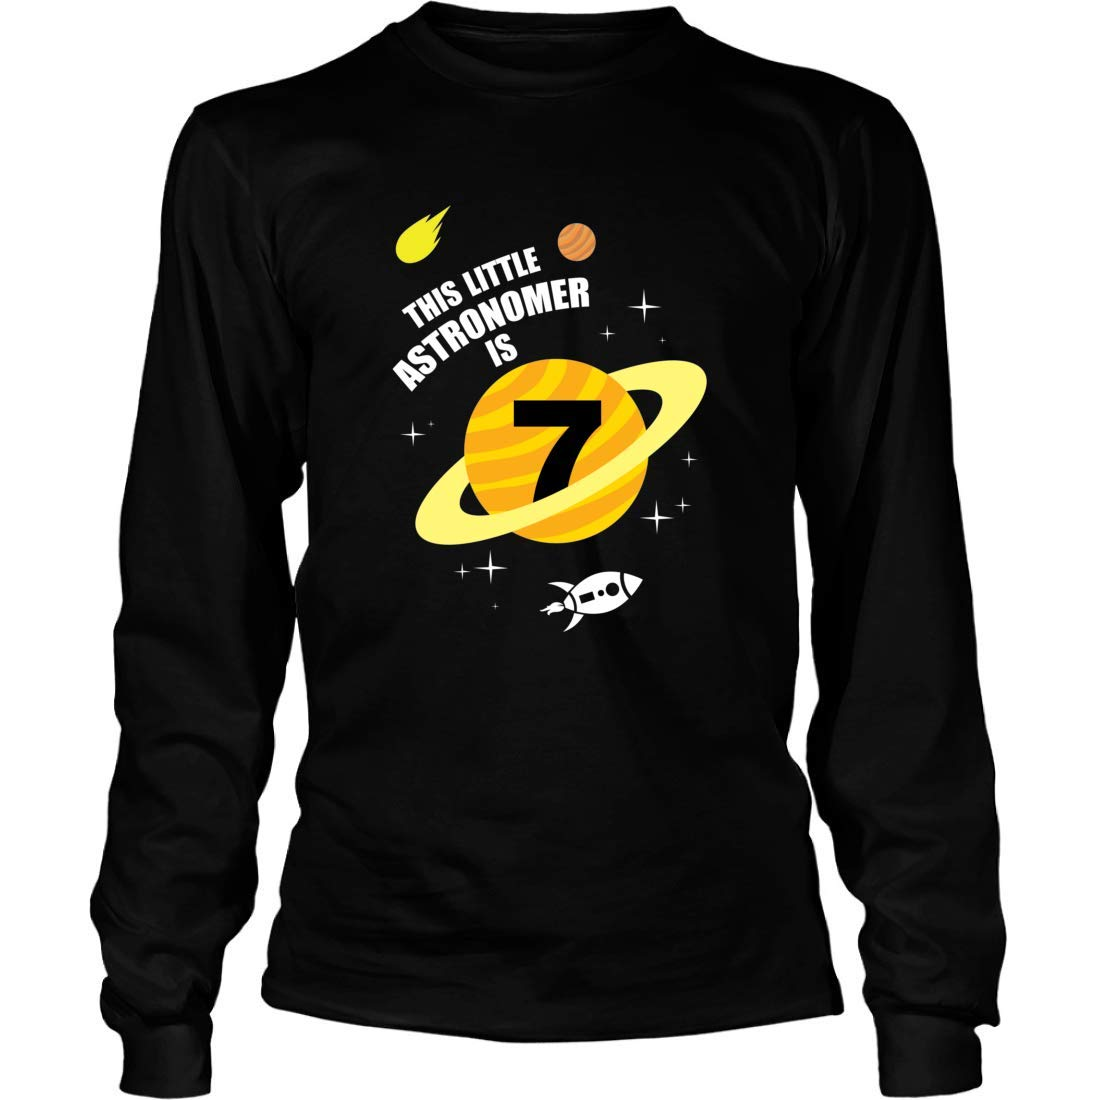 Mishozi This Little Astronomer is 7 Long Sleeve T-Shirt Unisex Shirts Gifts for USSF Space Force